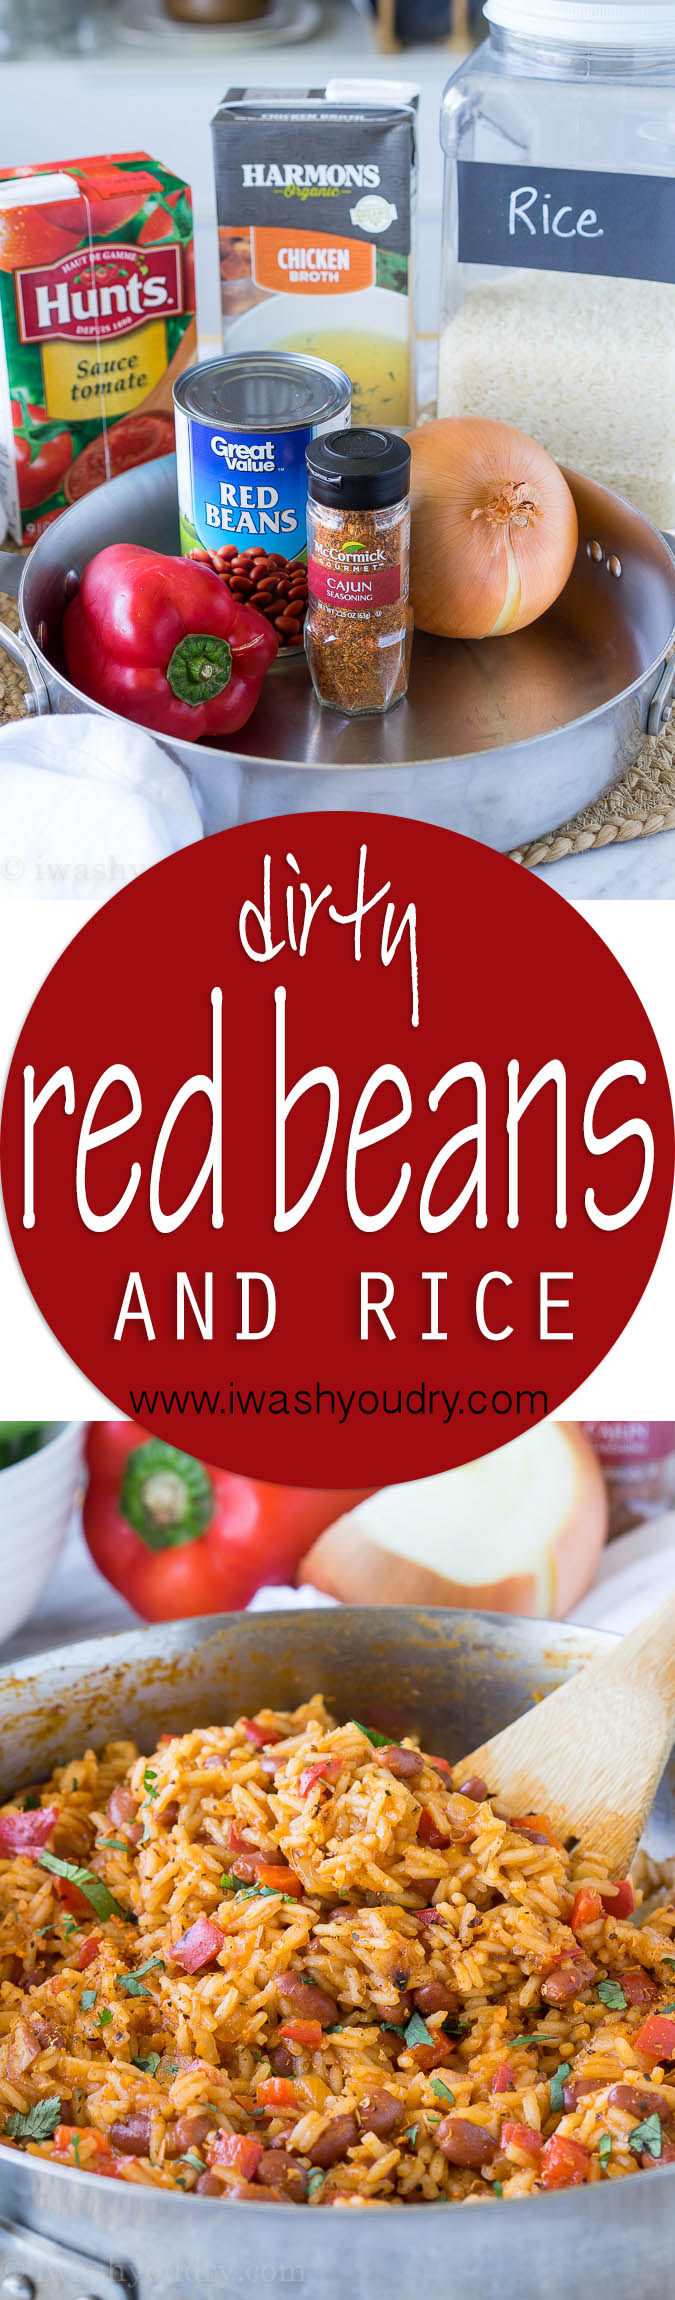 I'm in love with this one skillet Dirty Red Beans and Rice! It's a super quick side dish recipe, but can easily be turned into a main course by adding sliced andouille sausage!